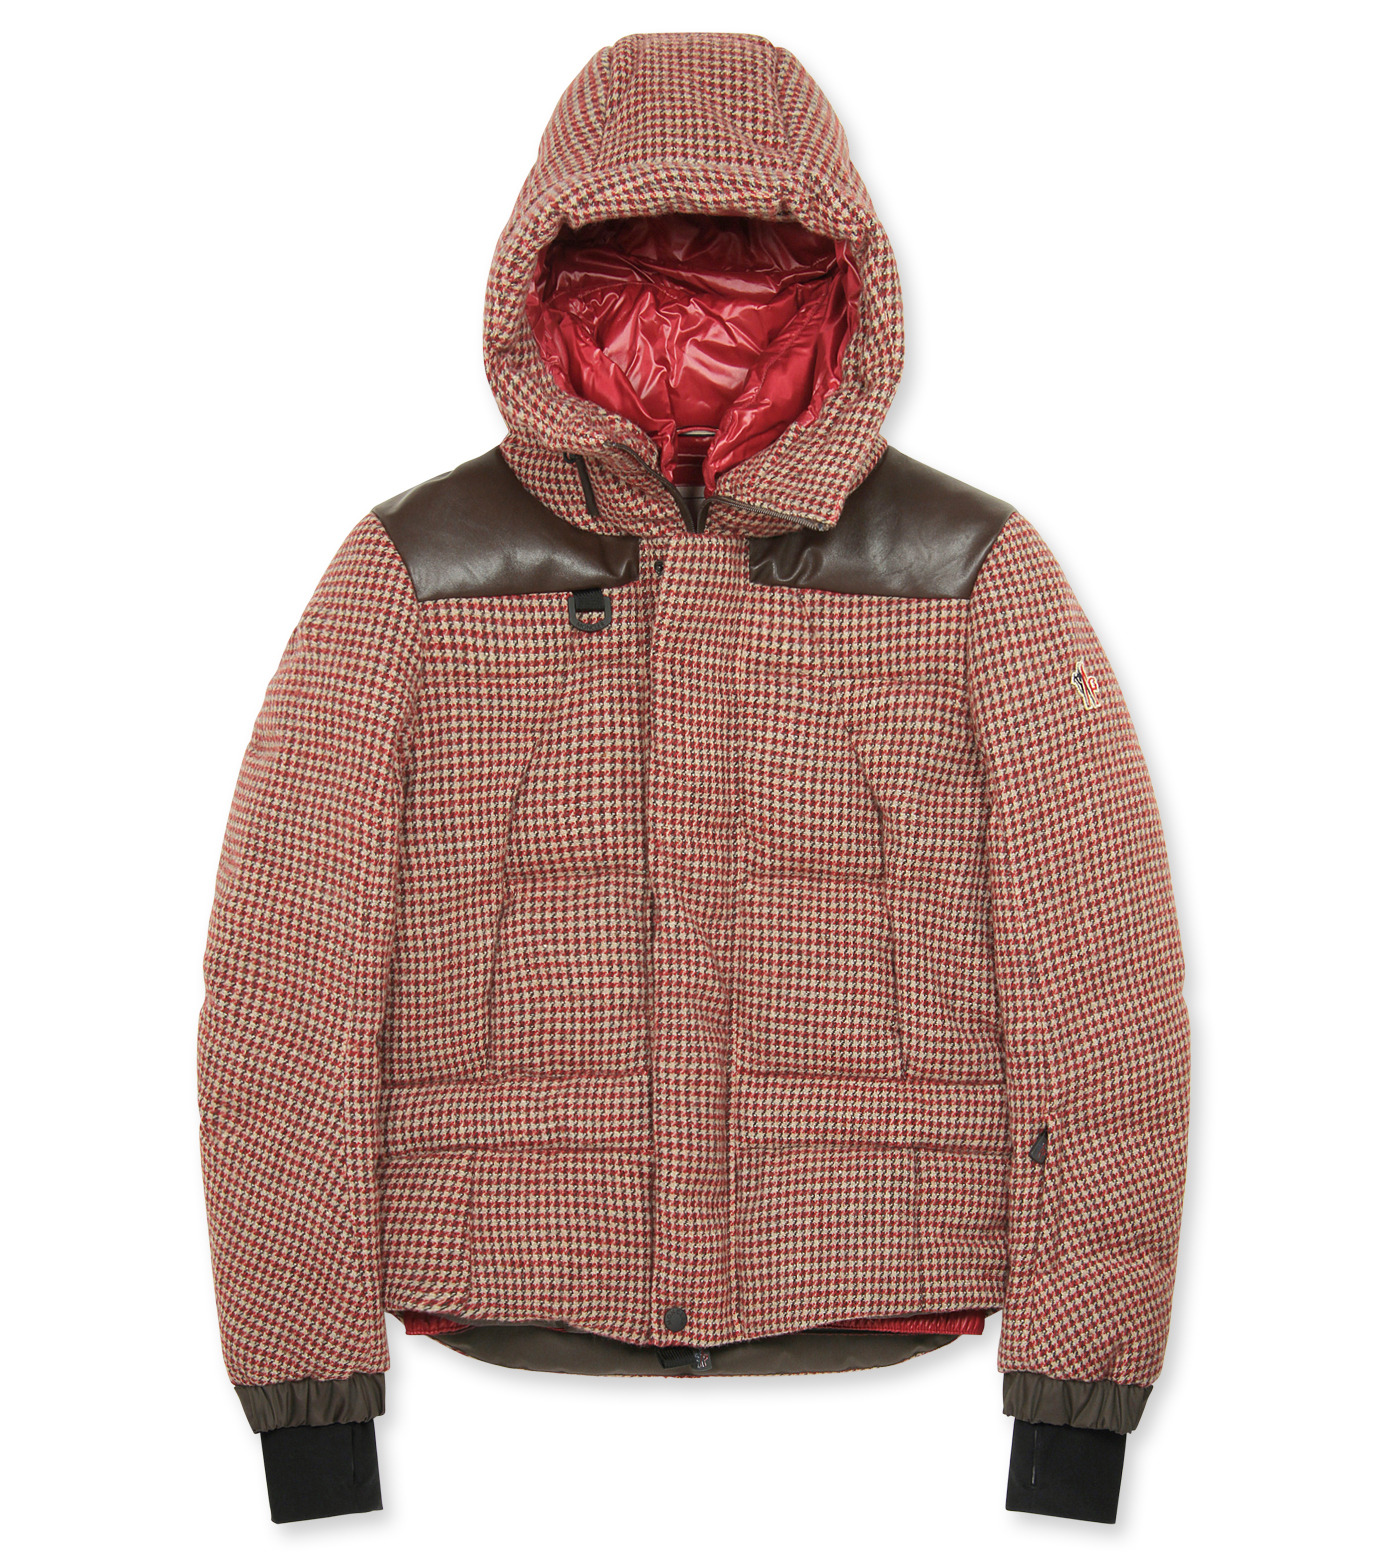 Moncler Grenoble(モンクレールグルノーブル)のCheck down-RED-41911-85-62 拡大詳細画像1